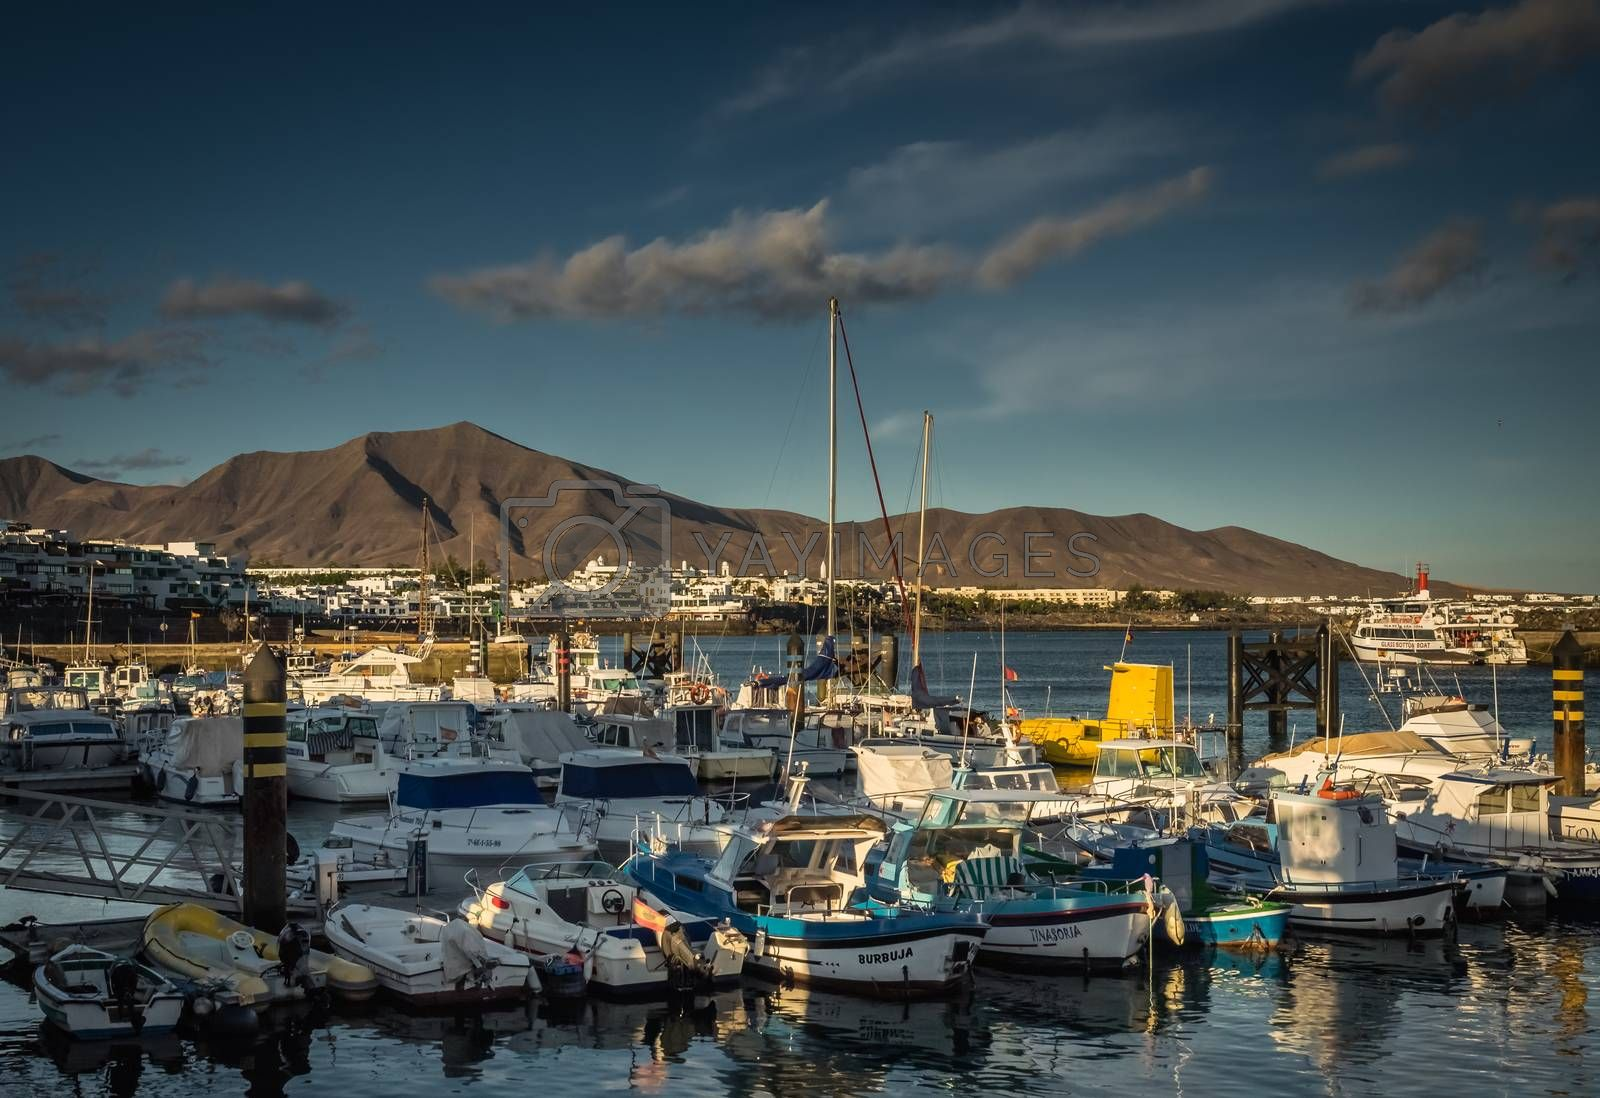 Colorful boats in a harbour in Playa Blanca, Lanzarote, Canary Islands, Spain. Picture taken 22 April 2016